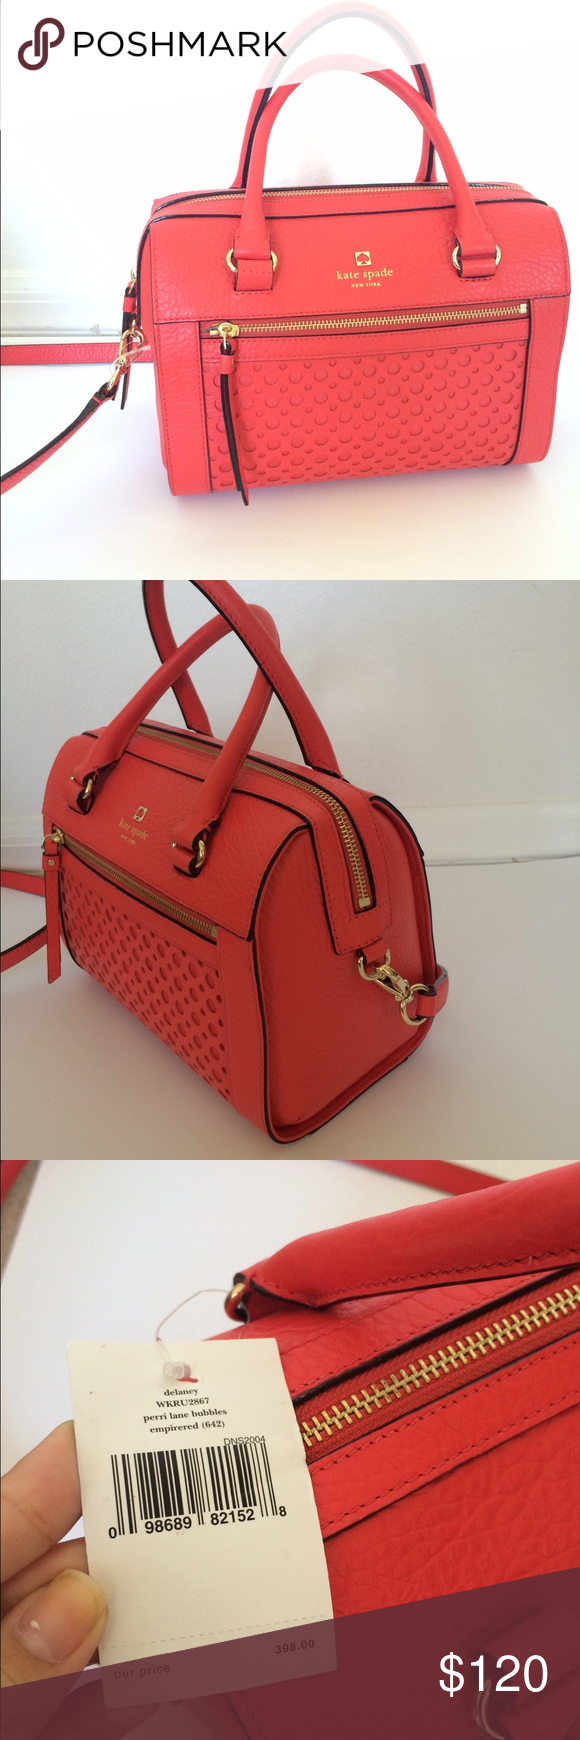 Authentic Kate Spade Bag New with price tags. kate spade Bags